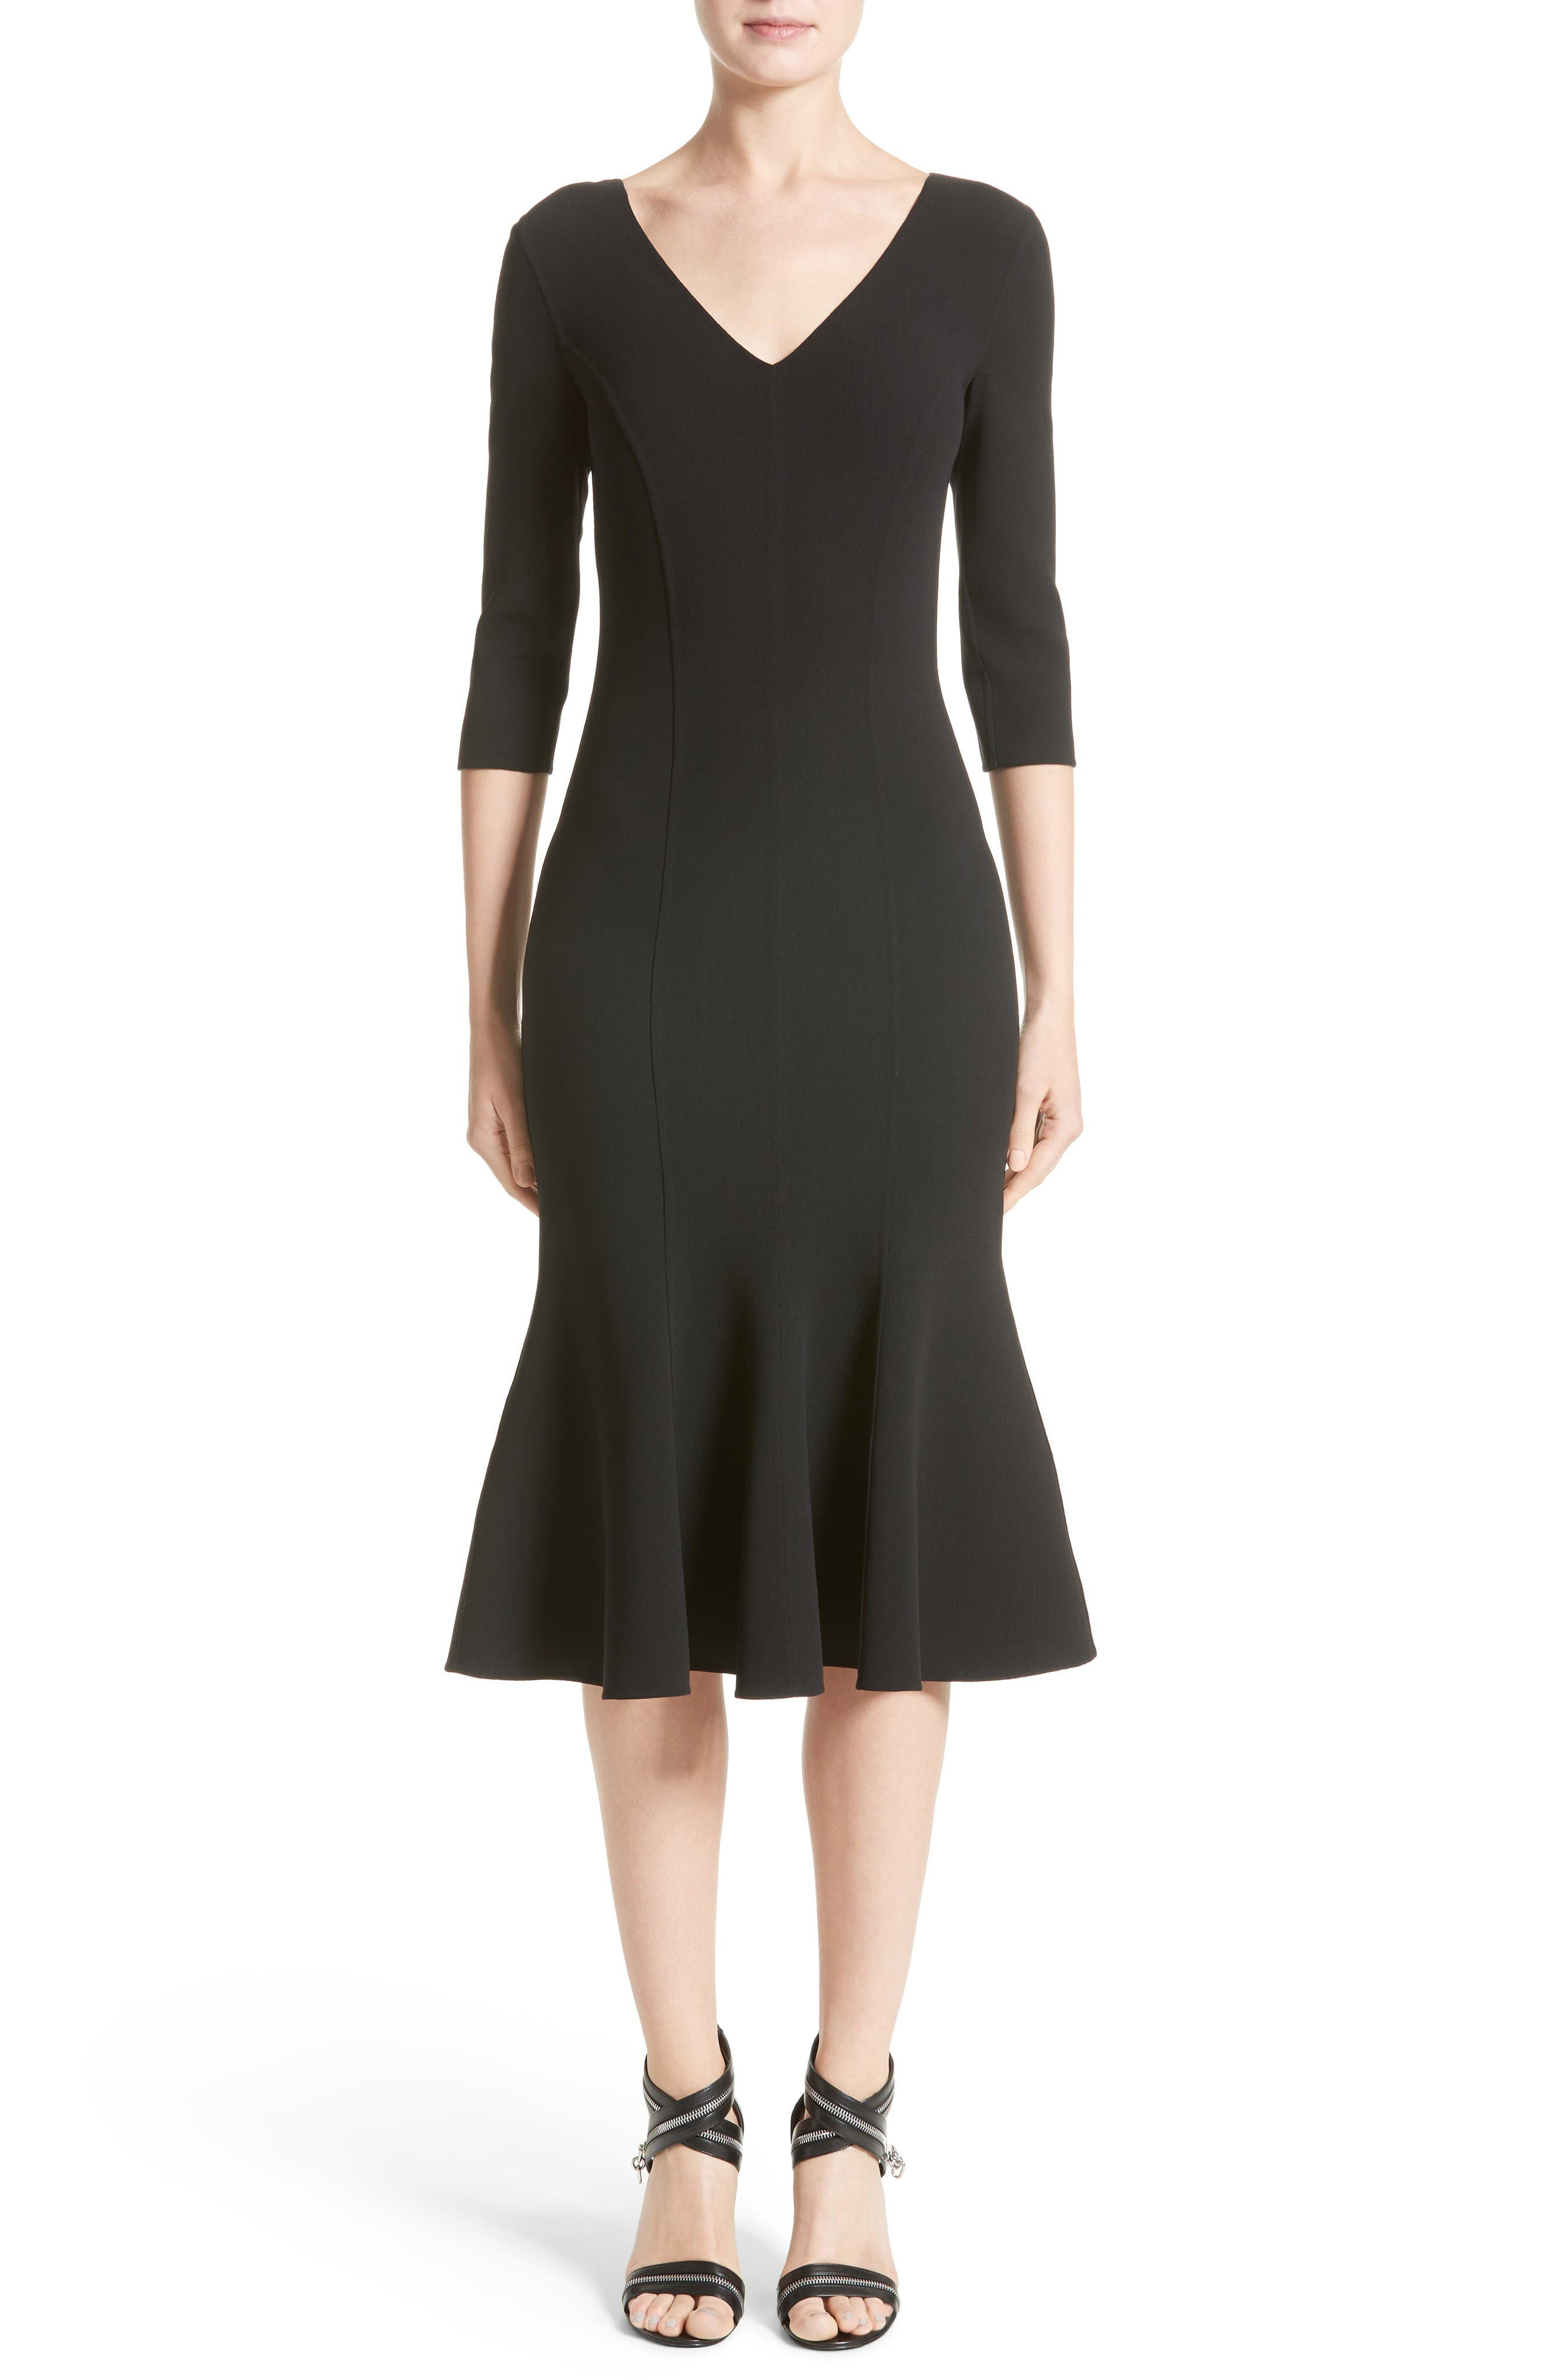 Michael Kors Stretch Wool Crepe Flounce Dress